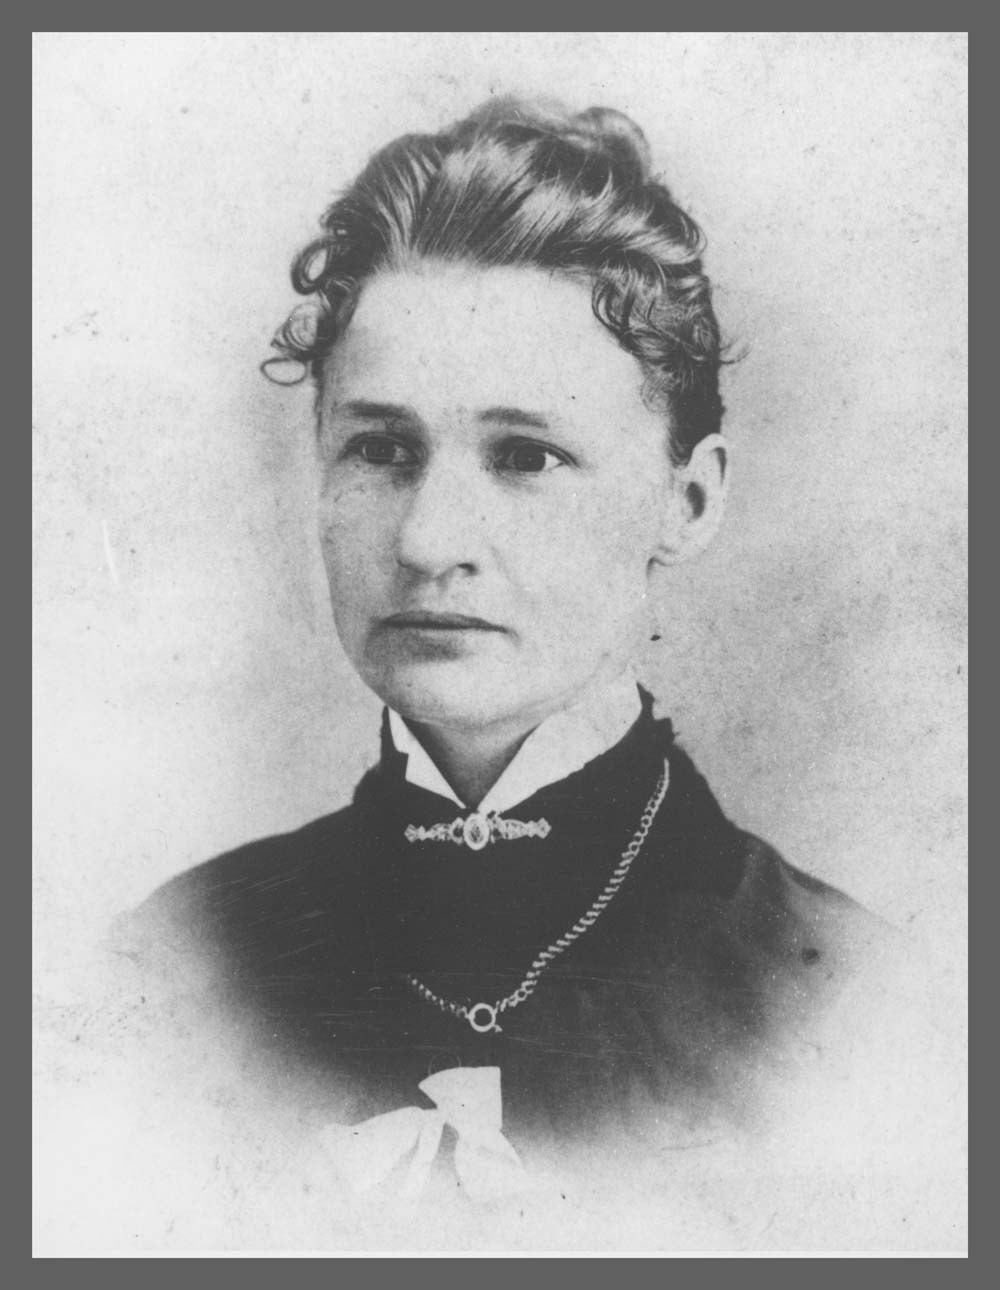 Susanna Salter, who was elected mayor of Argonia, Kansas in 1887, and is thought to be the first woman elected mayor in the U.S.